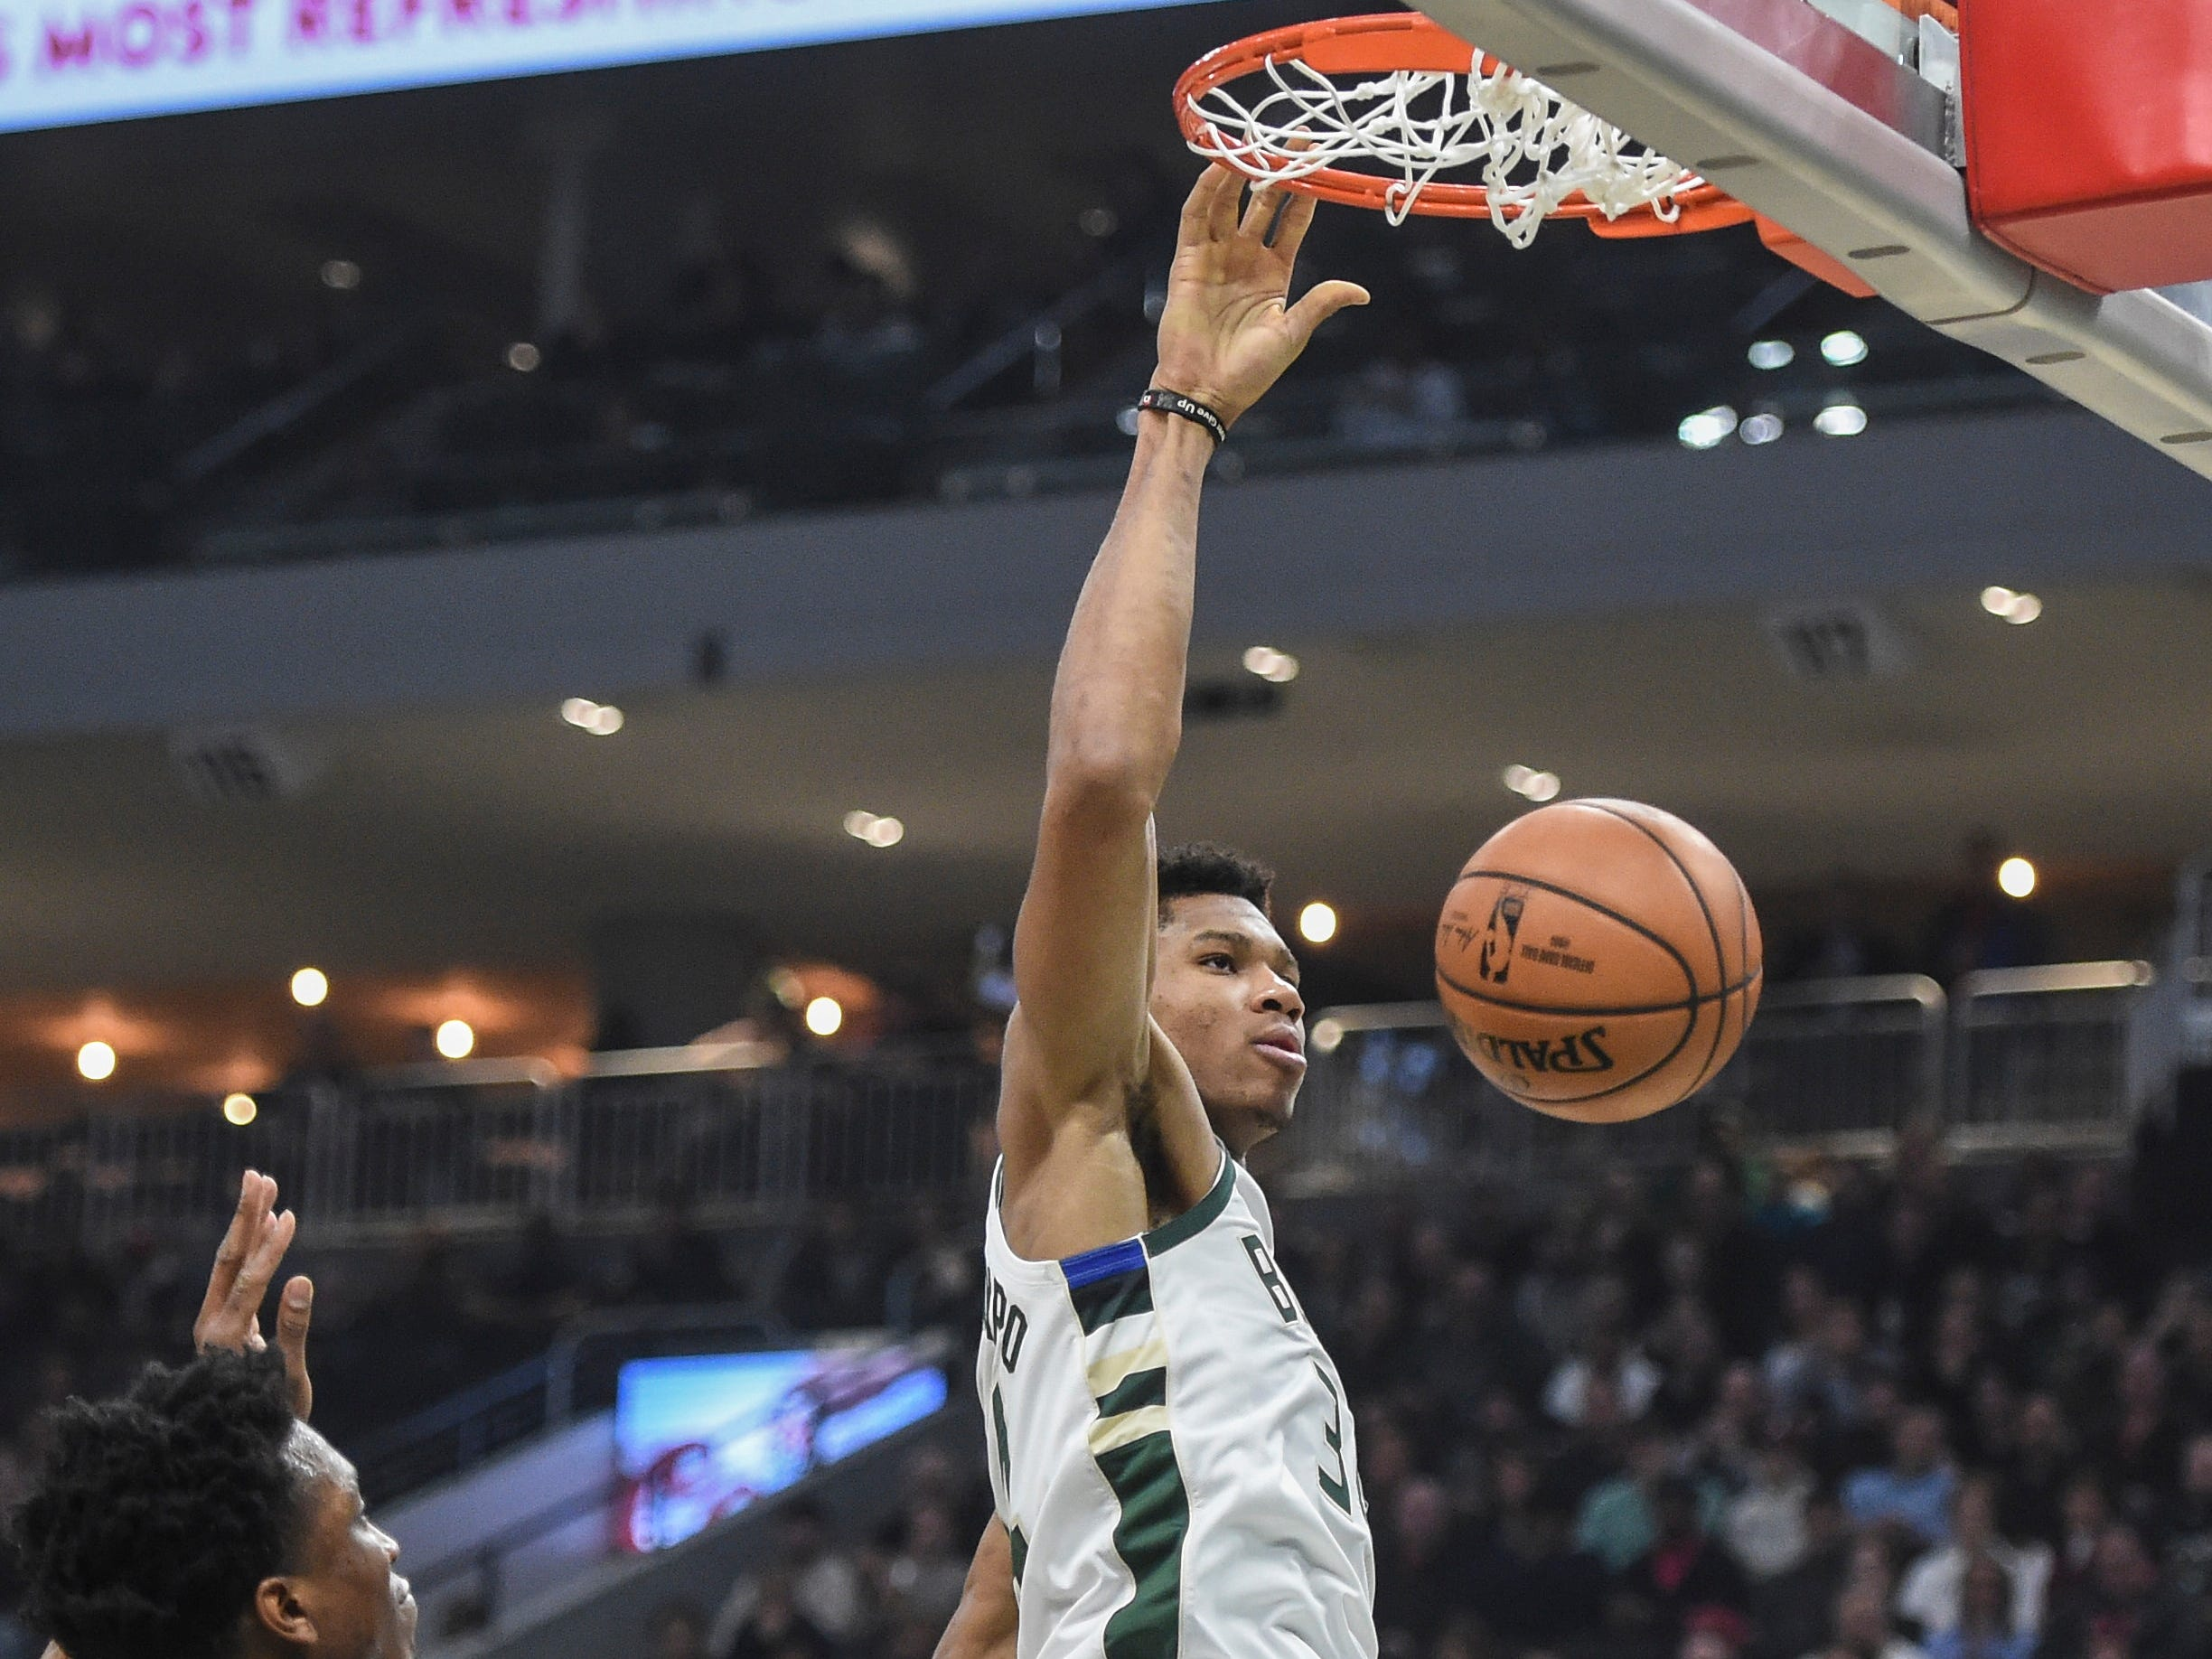 Bucks forward Giannis Antetokounmpo finishes off a dunk between Stanley Johnson and center Andre Drummond of the Pistons on Wednesday night.